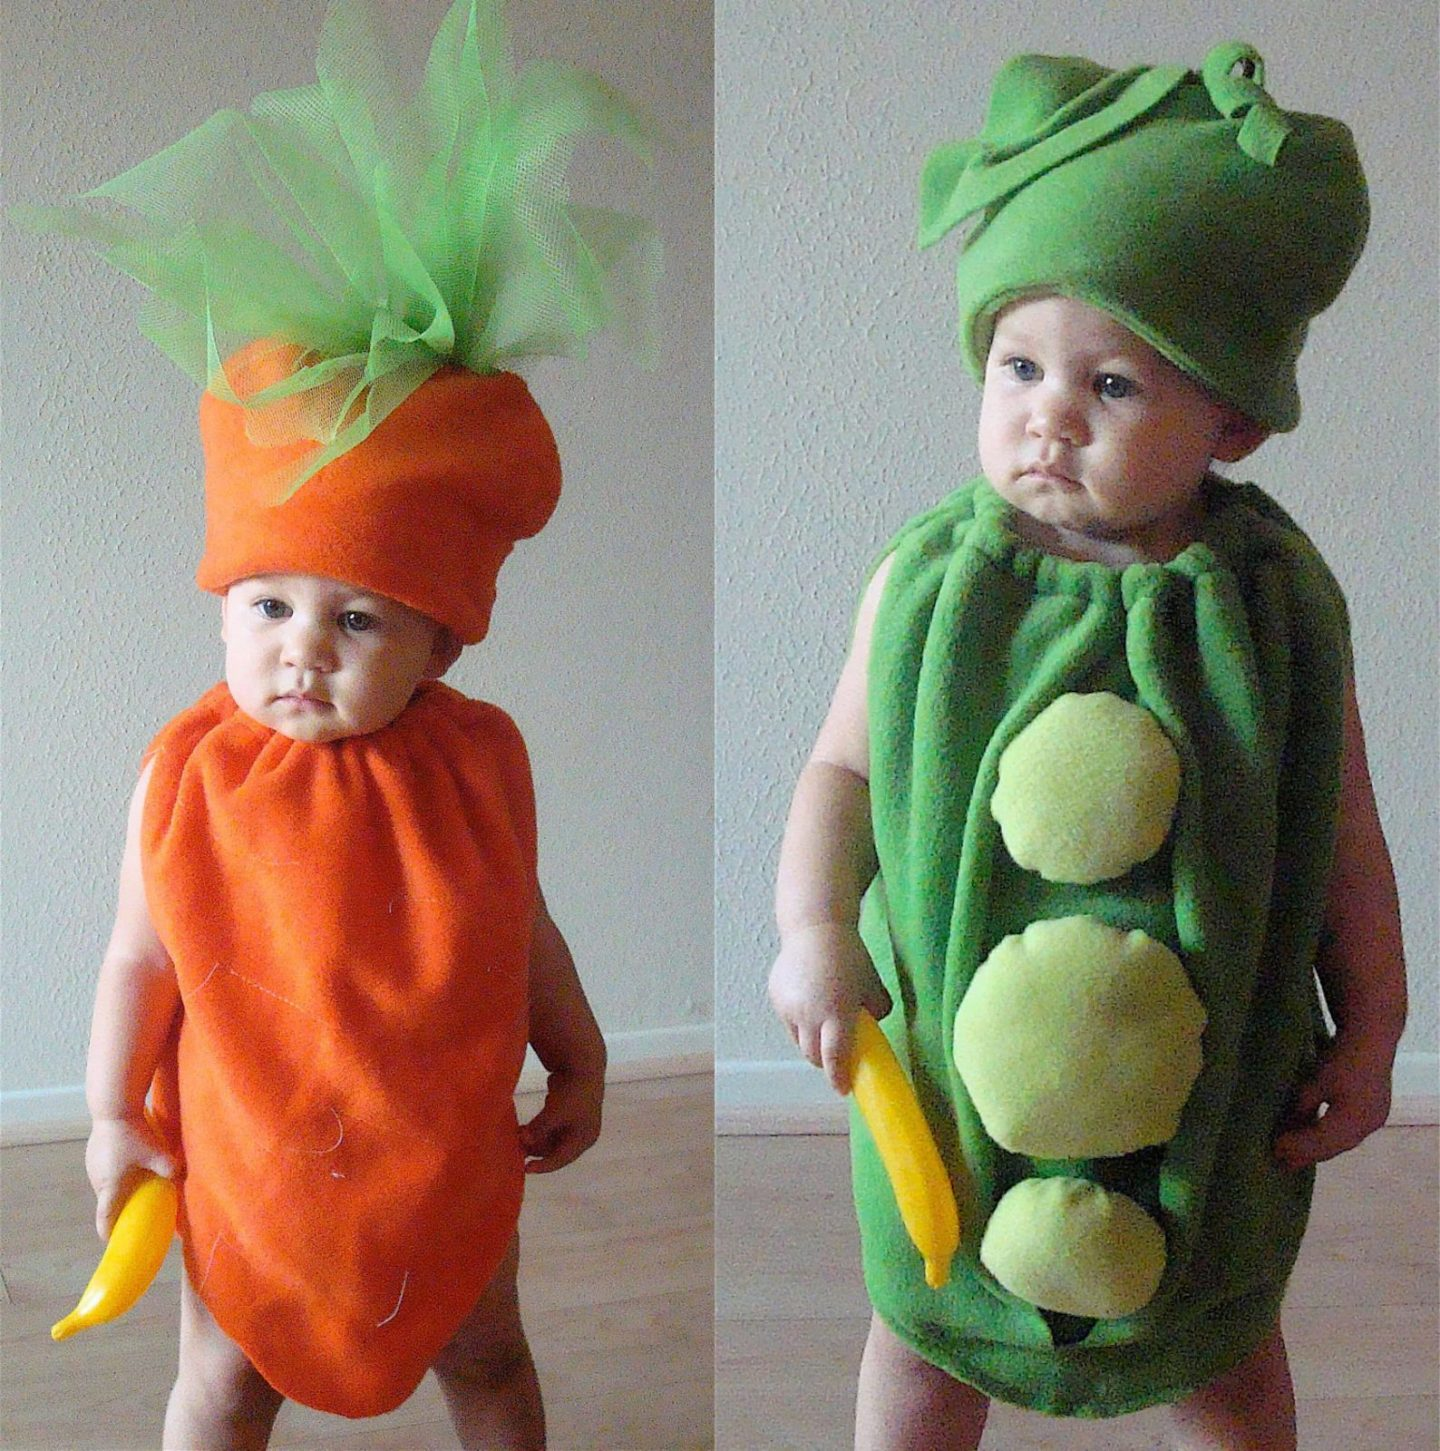 Cute and funny Halloween costumes for siblings